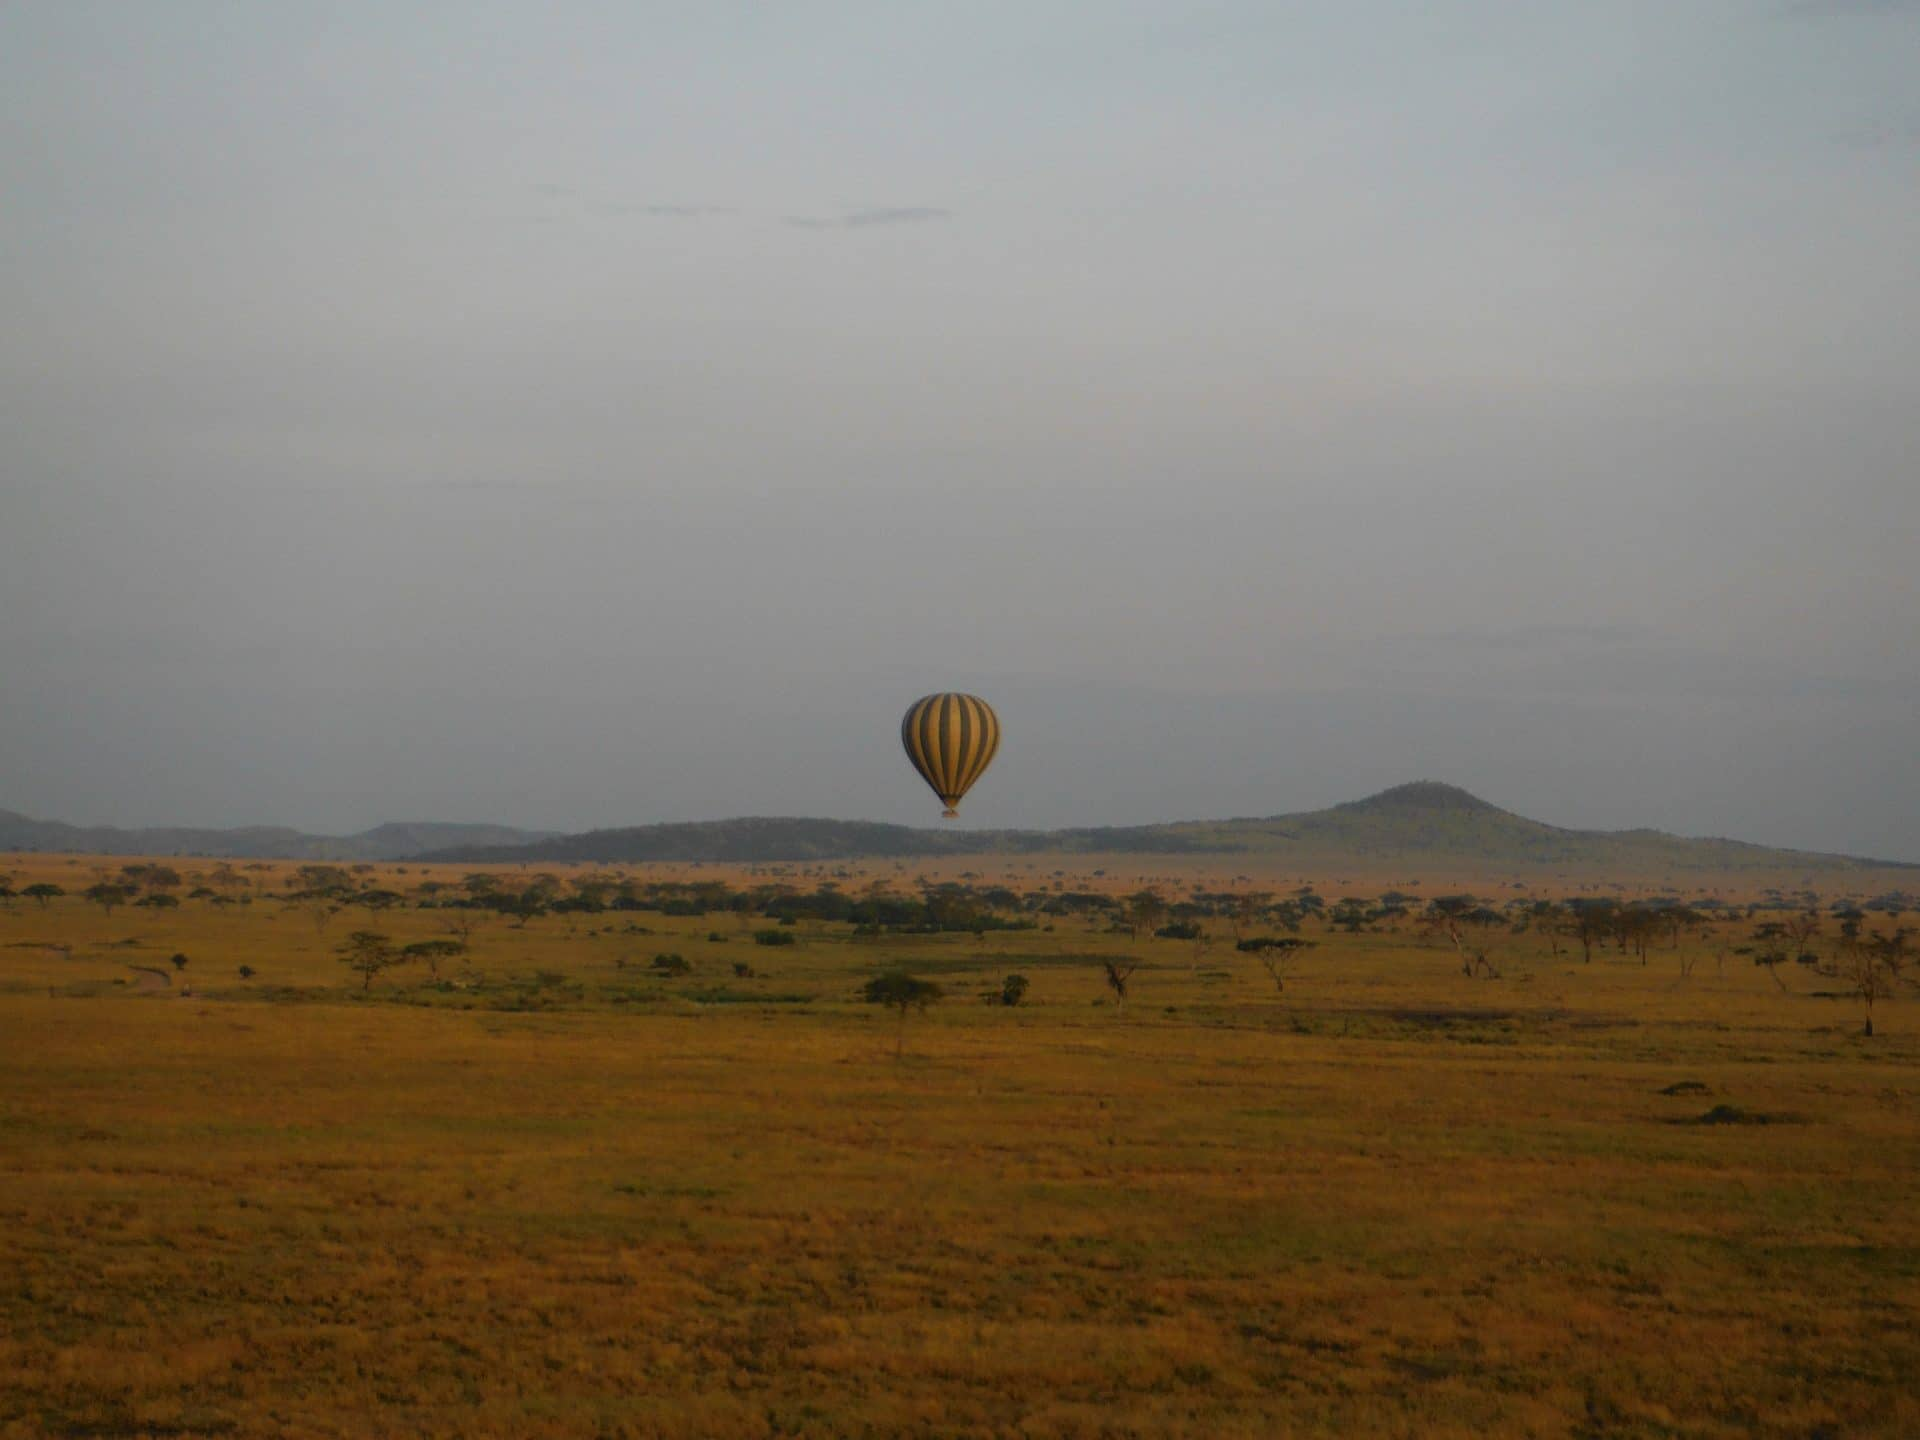 tanzanie-parc-national-Serengeti-goyav